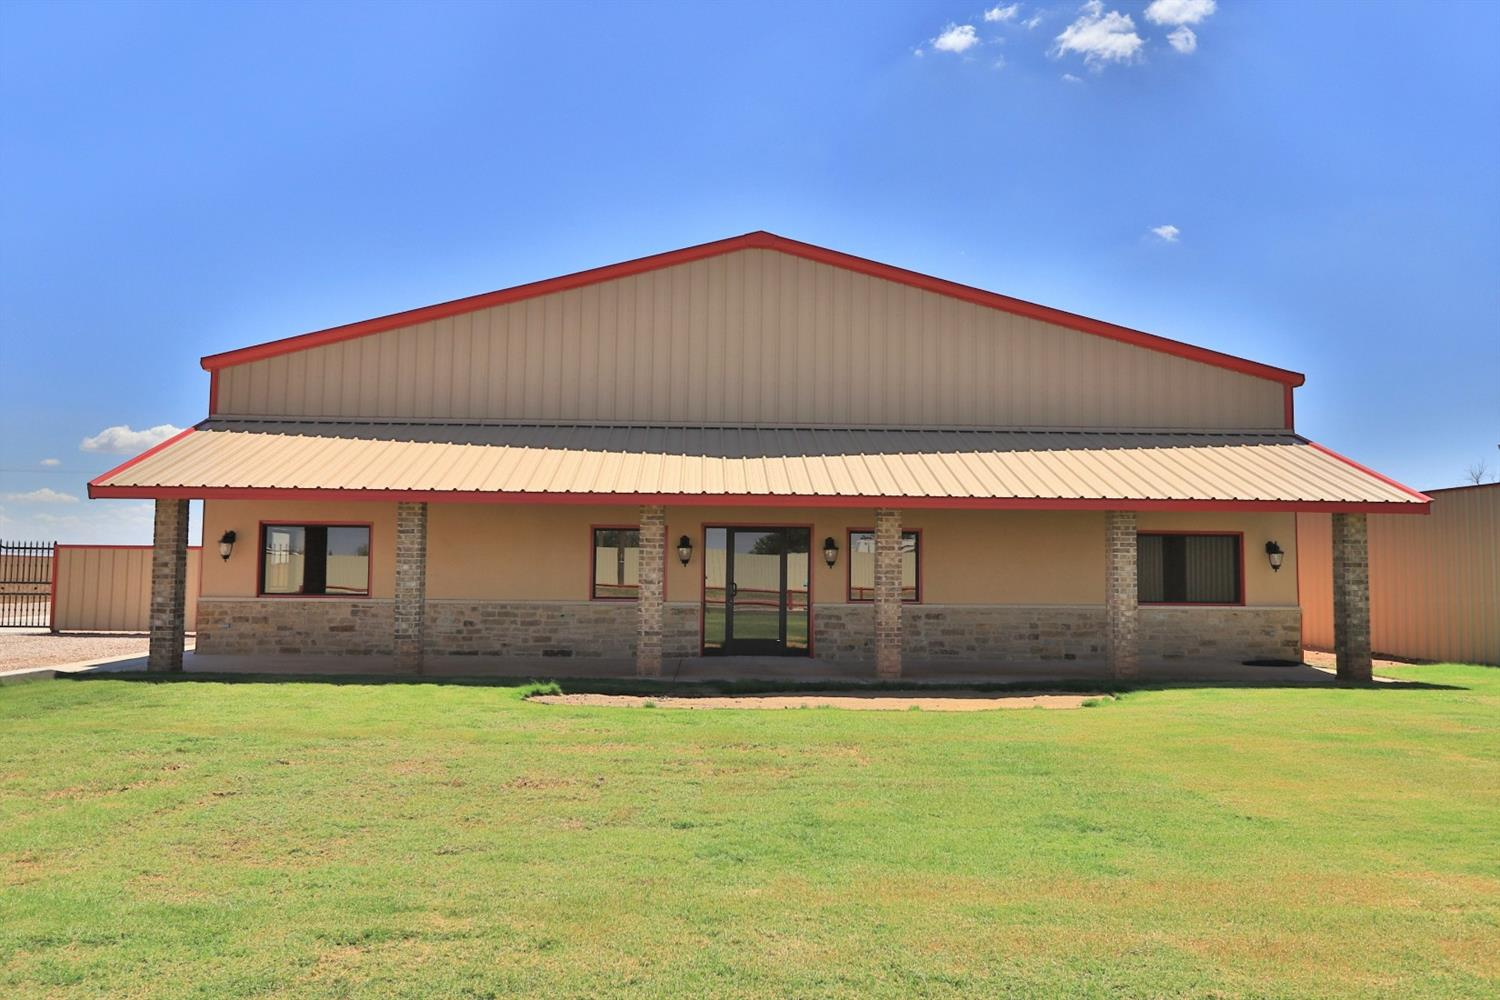 Newly constructed 4,800 square feet office / warehouse available for sale. There are 2 offices, conference room and break room. Expertly constructed with granite counters and beautiful epoxy finished floors. Front yard is planted in grass, and it has a sprinkler system installed. Above average construction quality and finishes. Sprayed Foam Insulation; 1 Acre Fenced Stack Lot - Crushed Rock; 3 - 14' Overhead Doors - Pull Through; Well and Septic (30- 50 Amp Service with Full H20 RV Hookup); Fiber in Place; Around the Corner From Lubbock Executive Airport